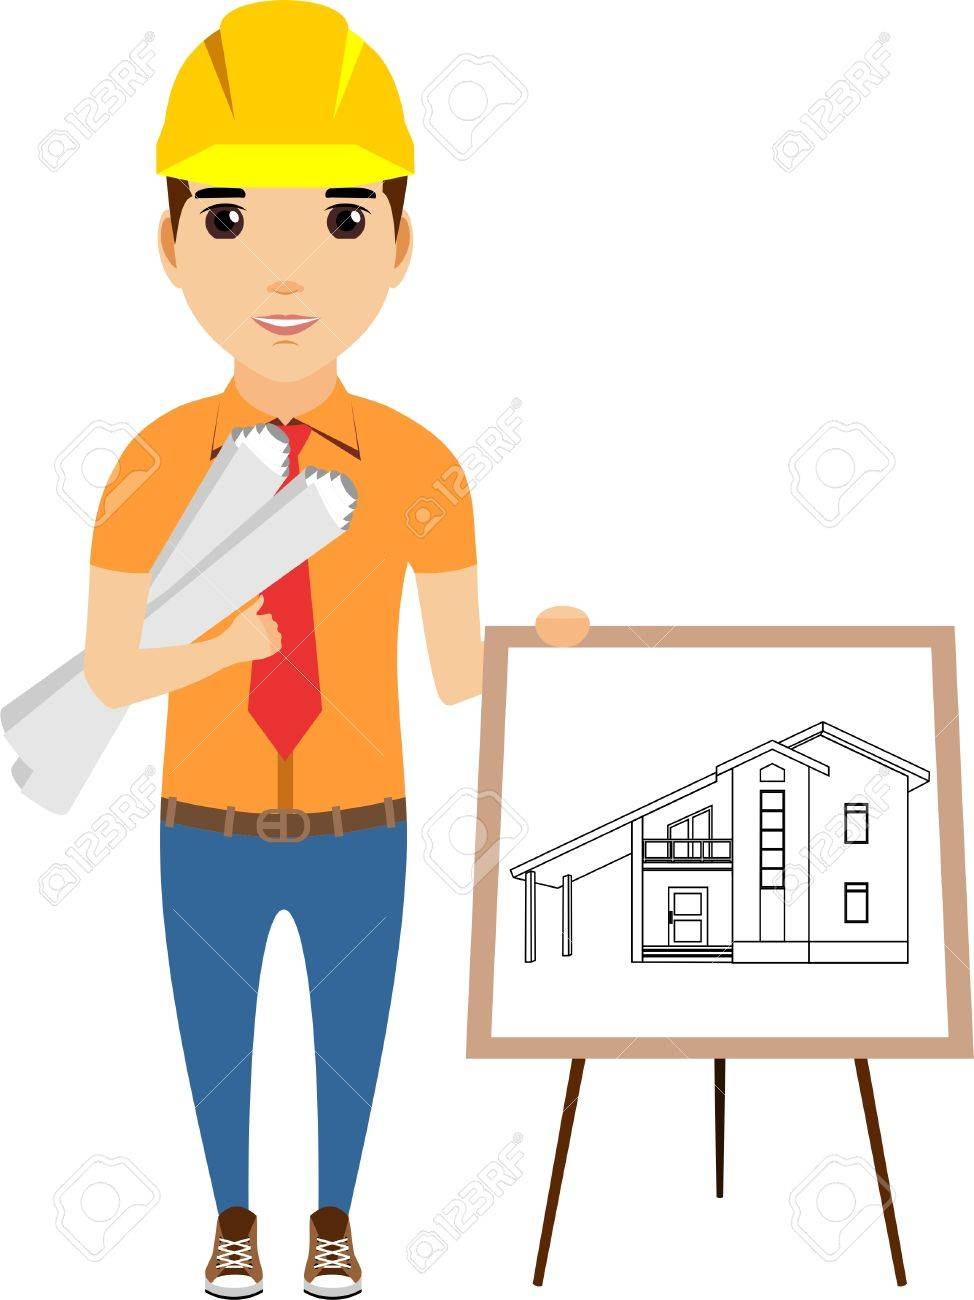 974x1300 The Concept Of An Engineer Standing Near The Drawing To The House